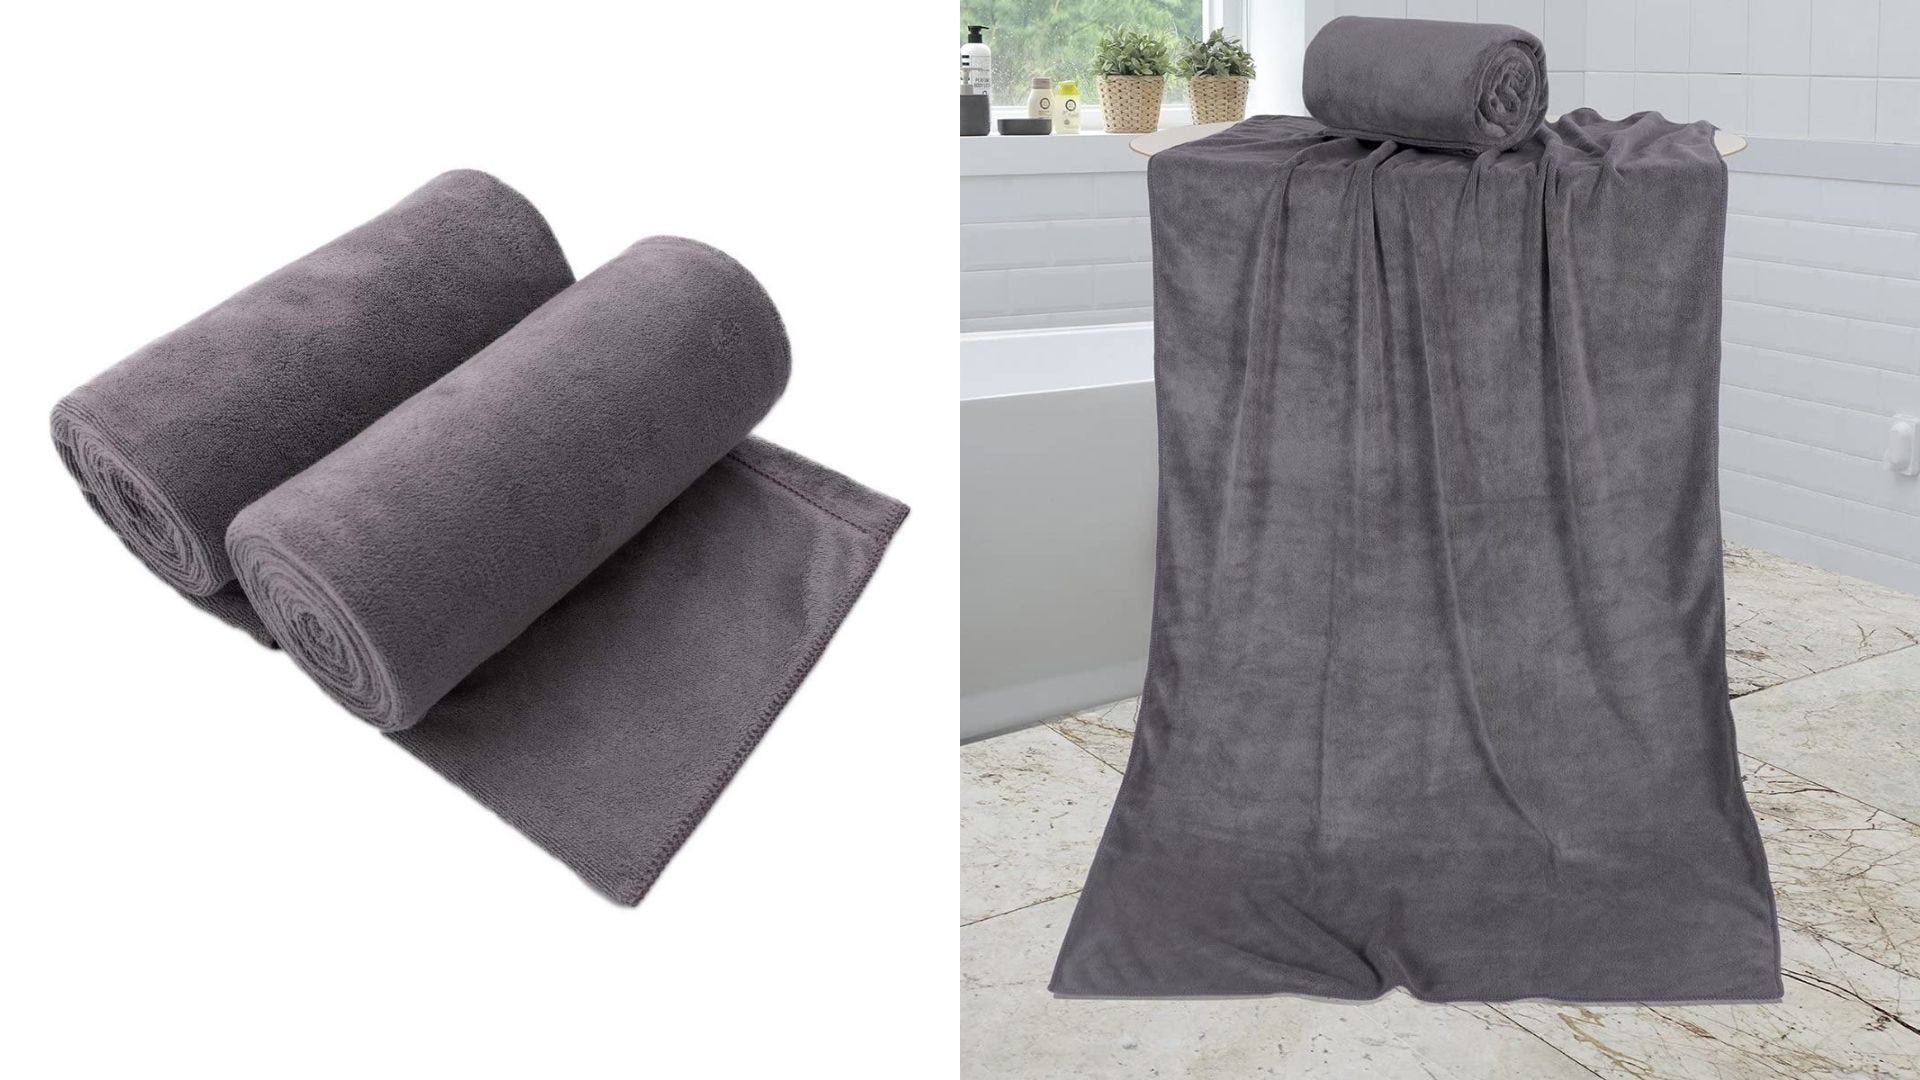 Two large gray towels rolled up and one hanging over a table